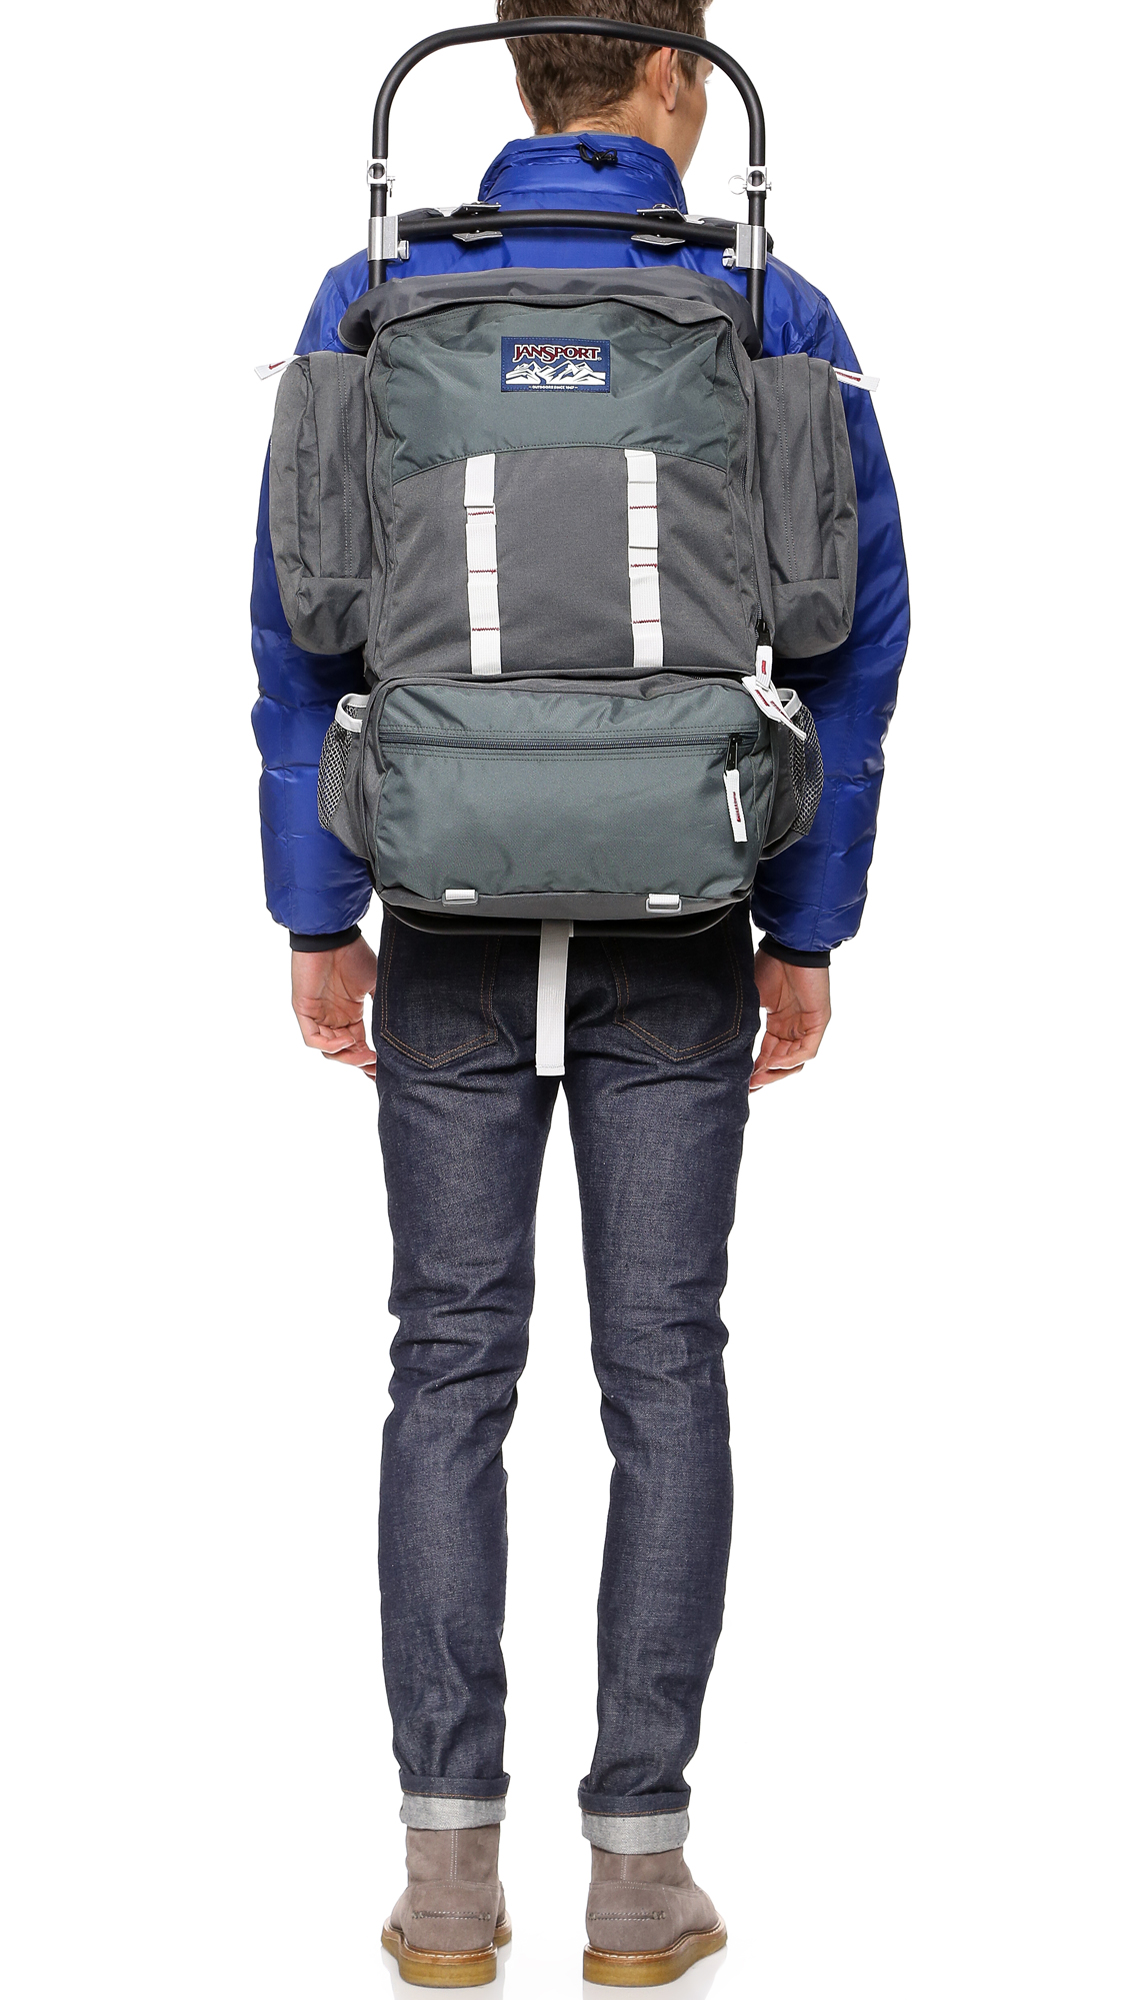 Jansport Scout Backpack RWABxAJ3